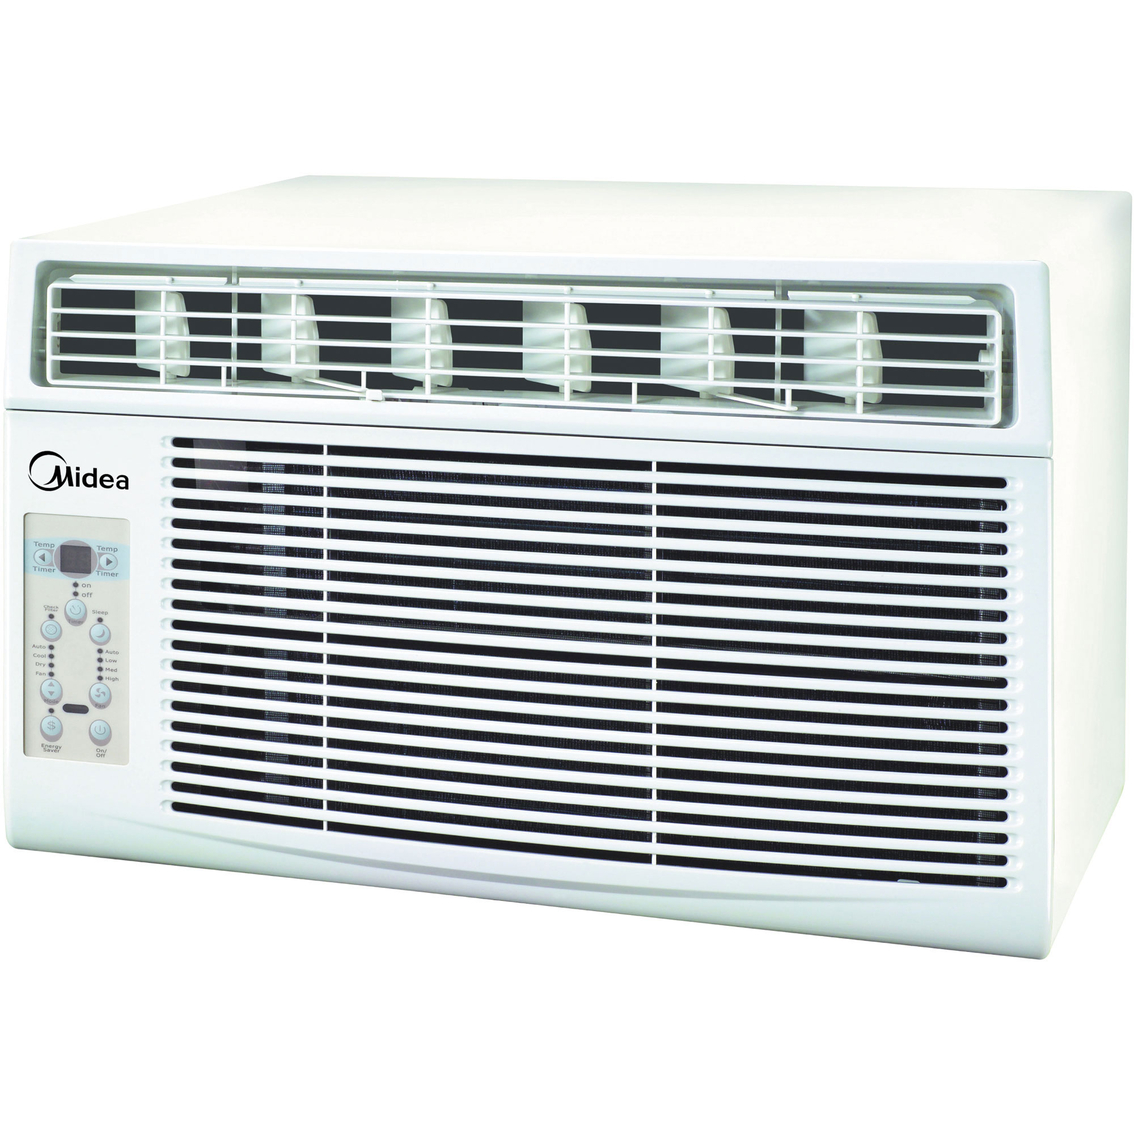 Midea 10 000 Btu Window Air Conditioner Window Air Conditioners  #5D7358